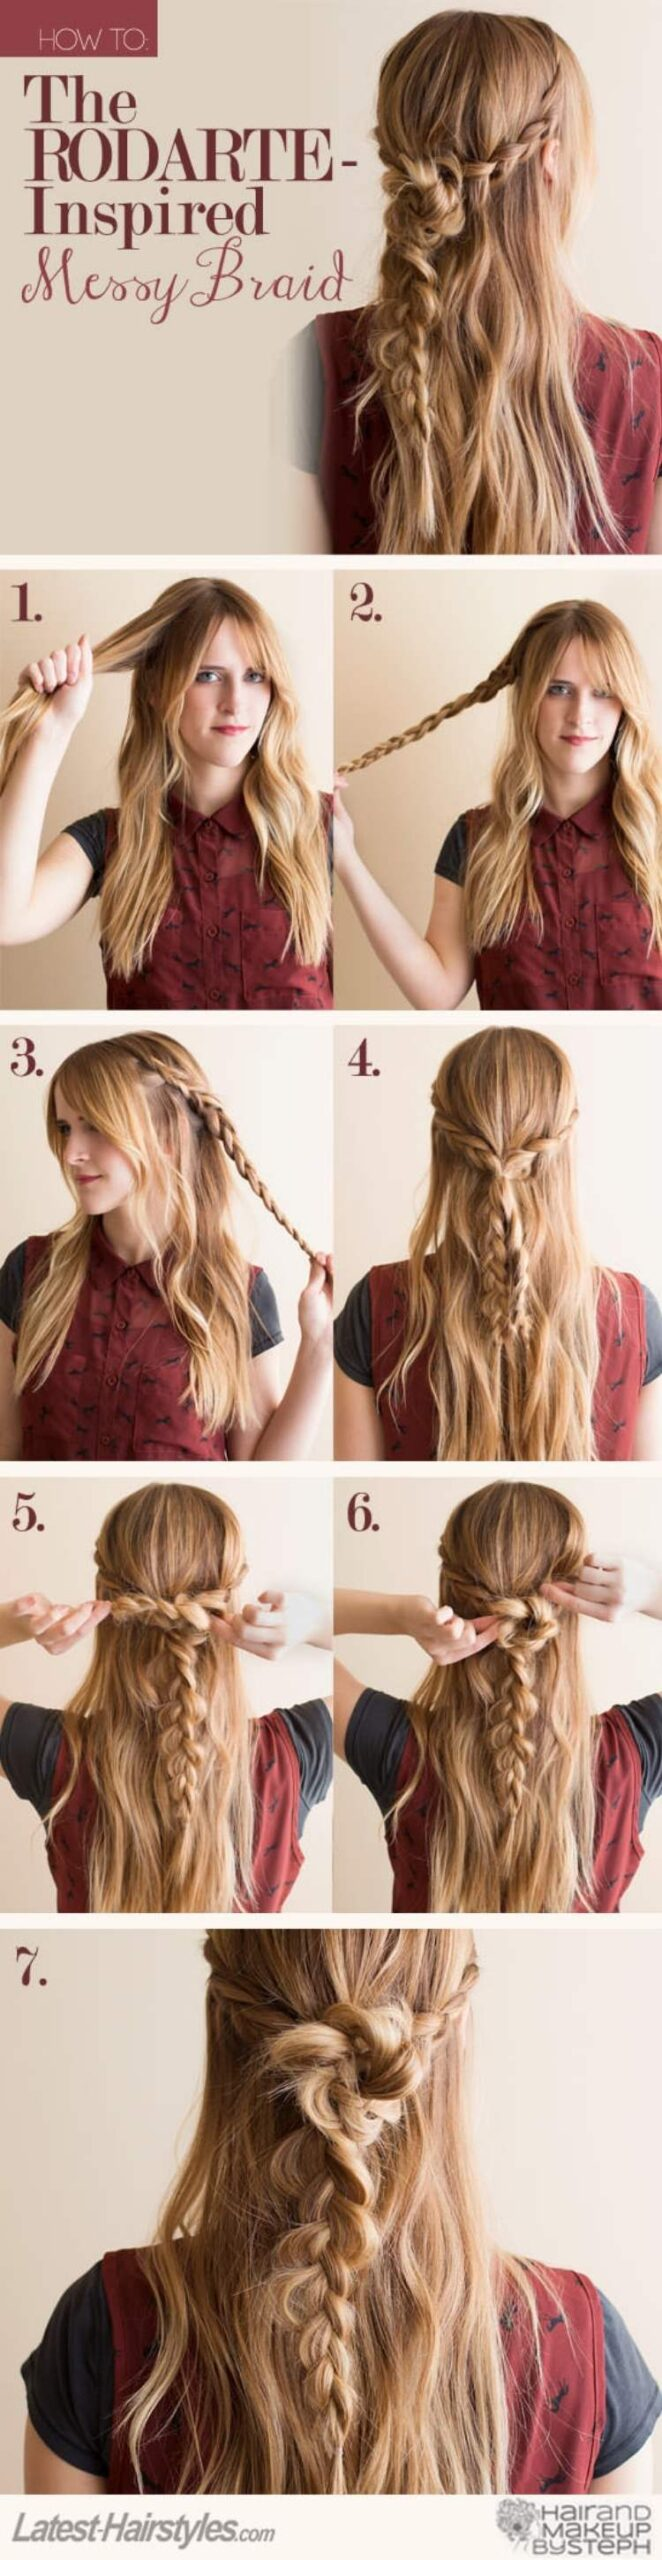 Simple Half-Up Hairstyle with boho braid